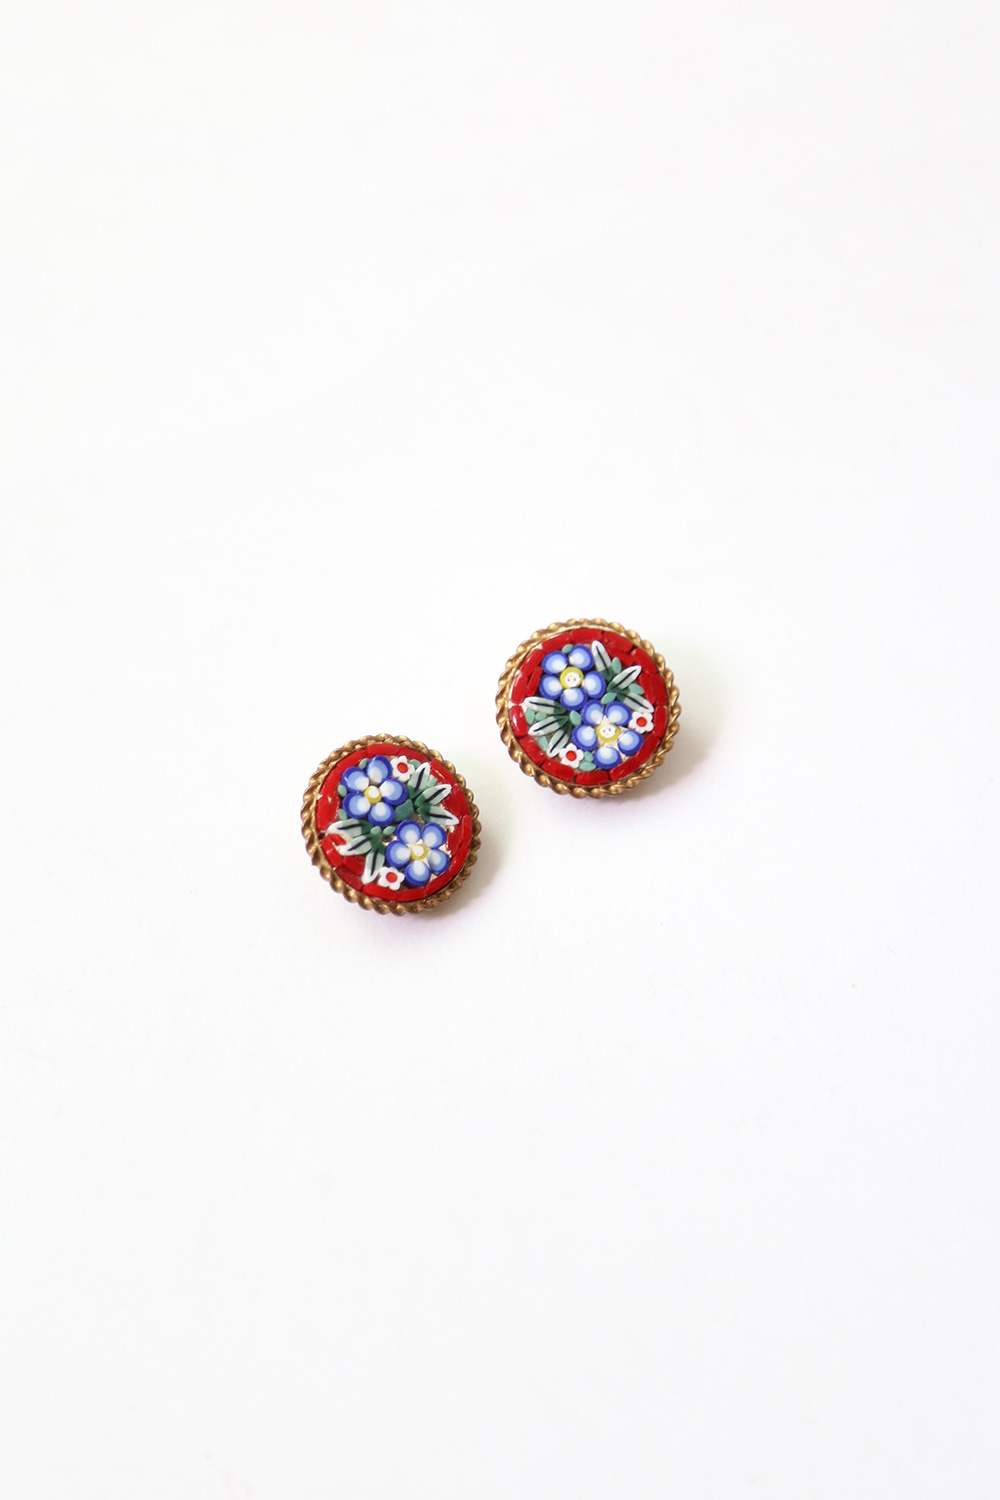 ITALIAN MOSAIC EARRINGS